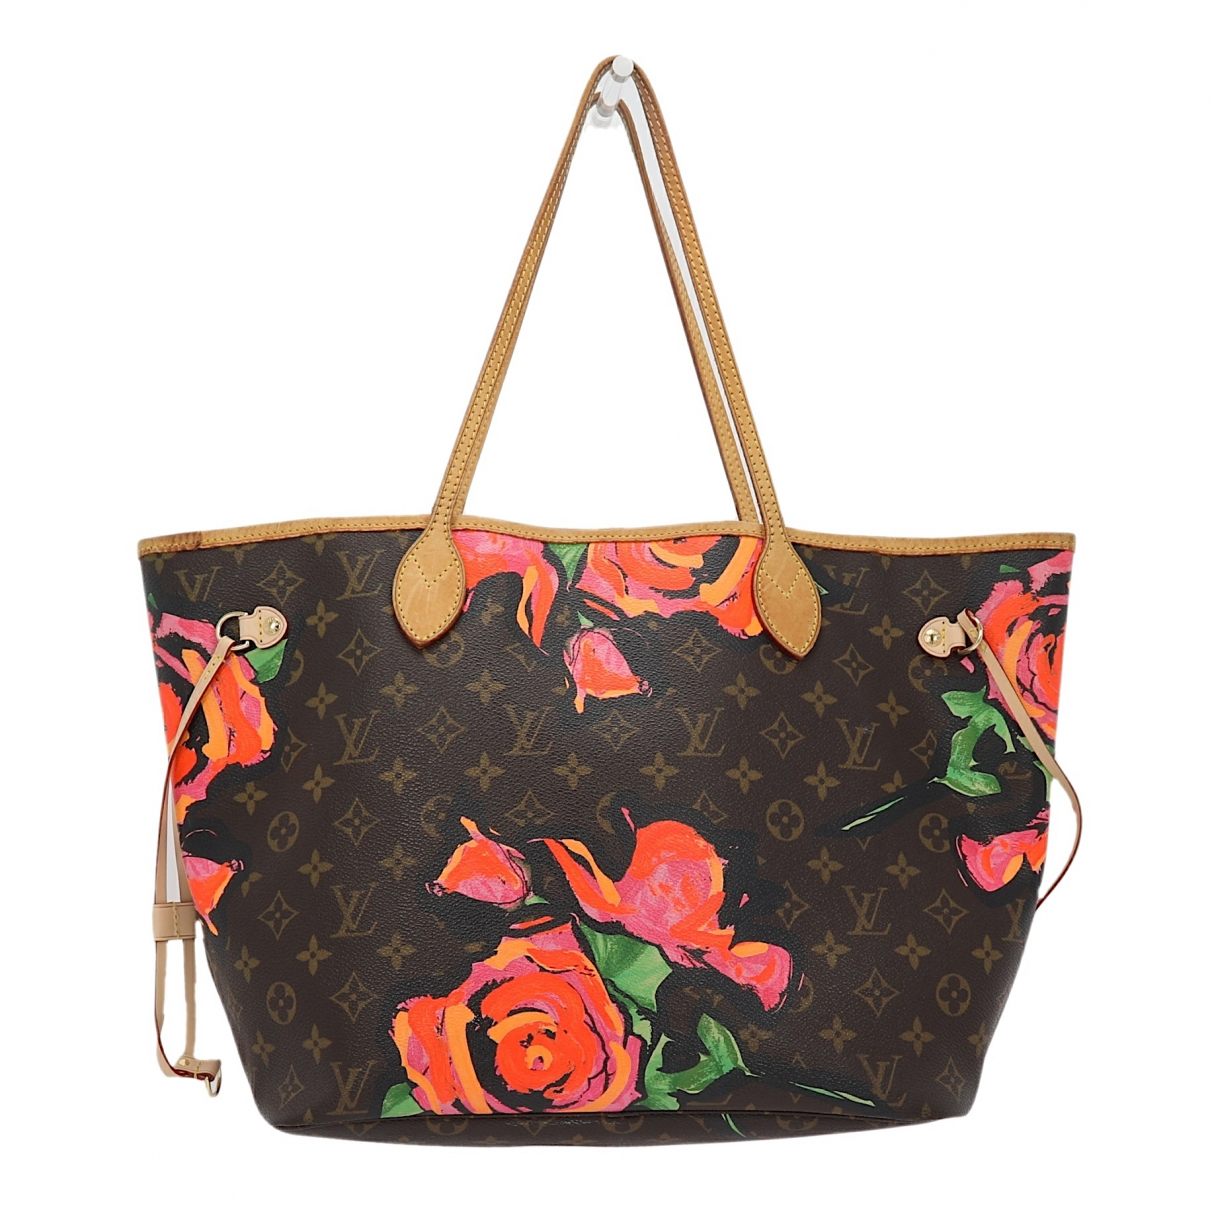 Louis Vuitton Neverfull Brown Cloth handbag for Women N